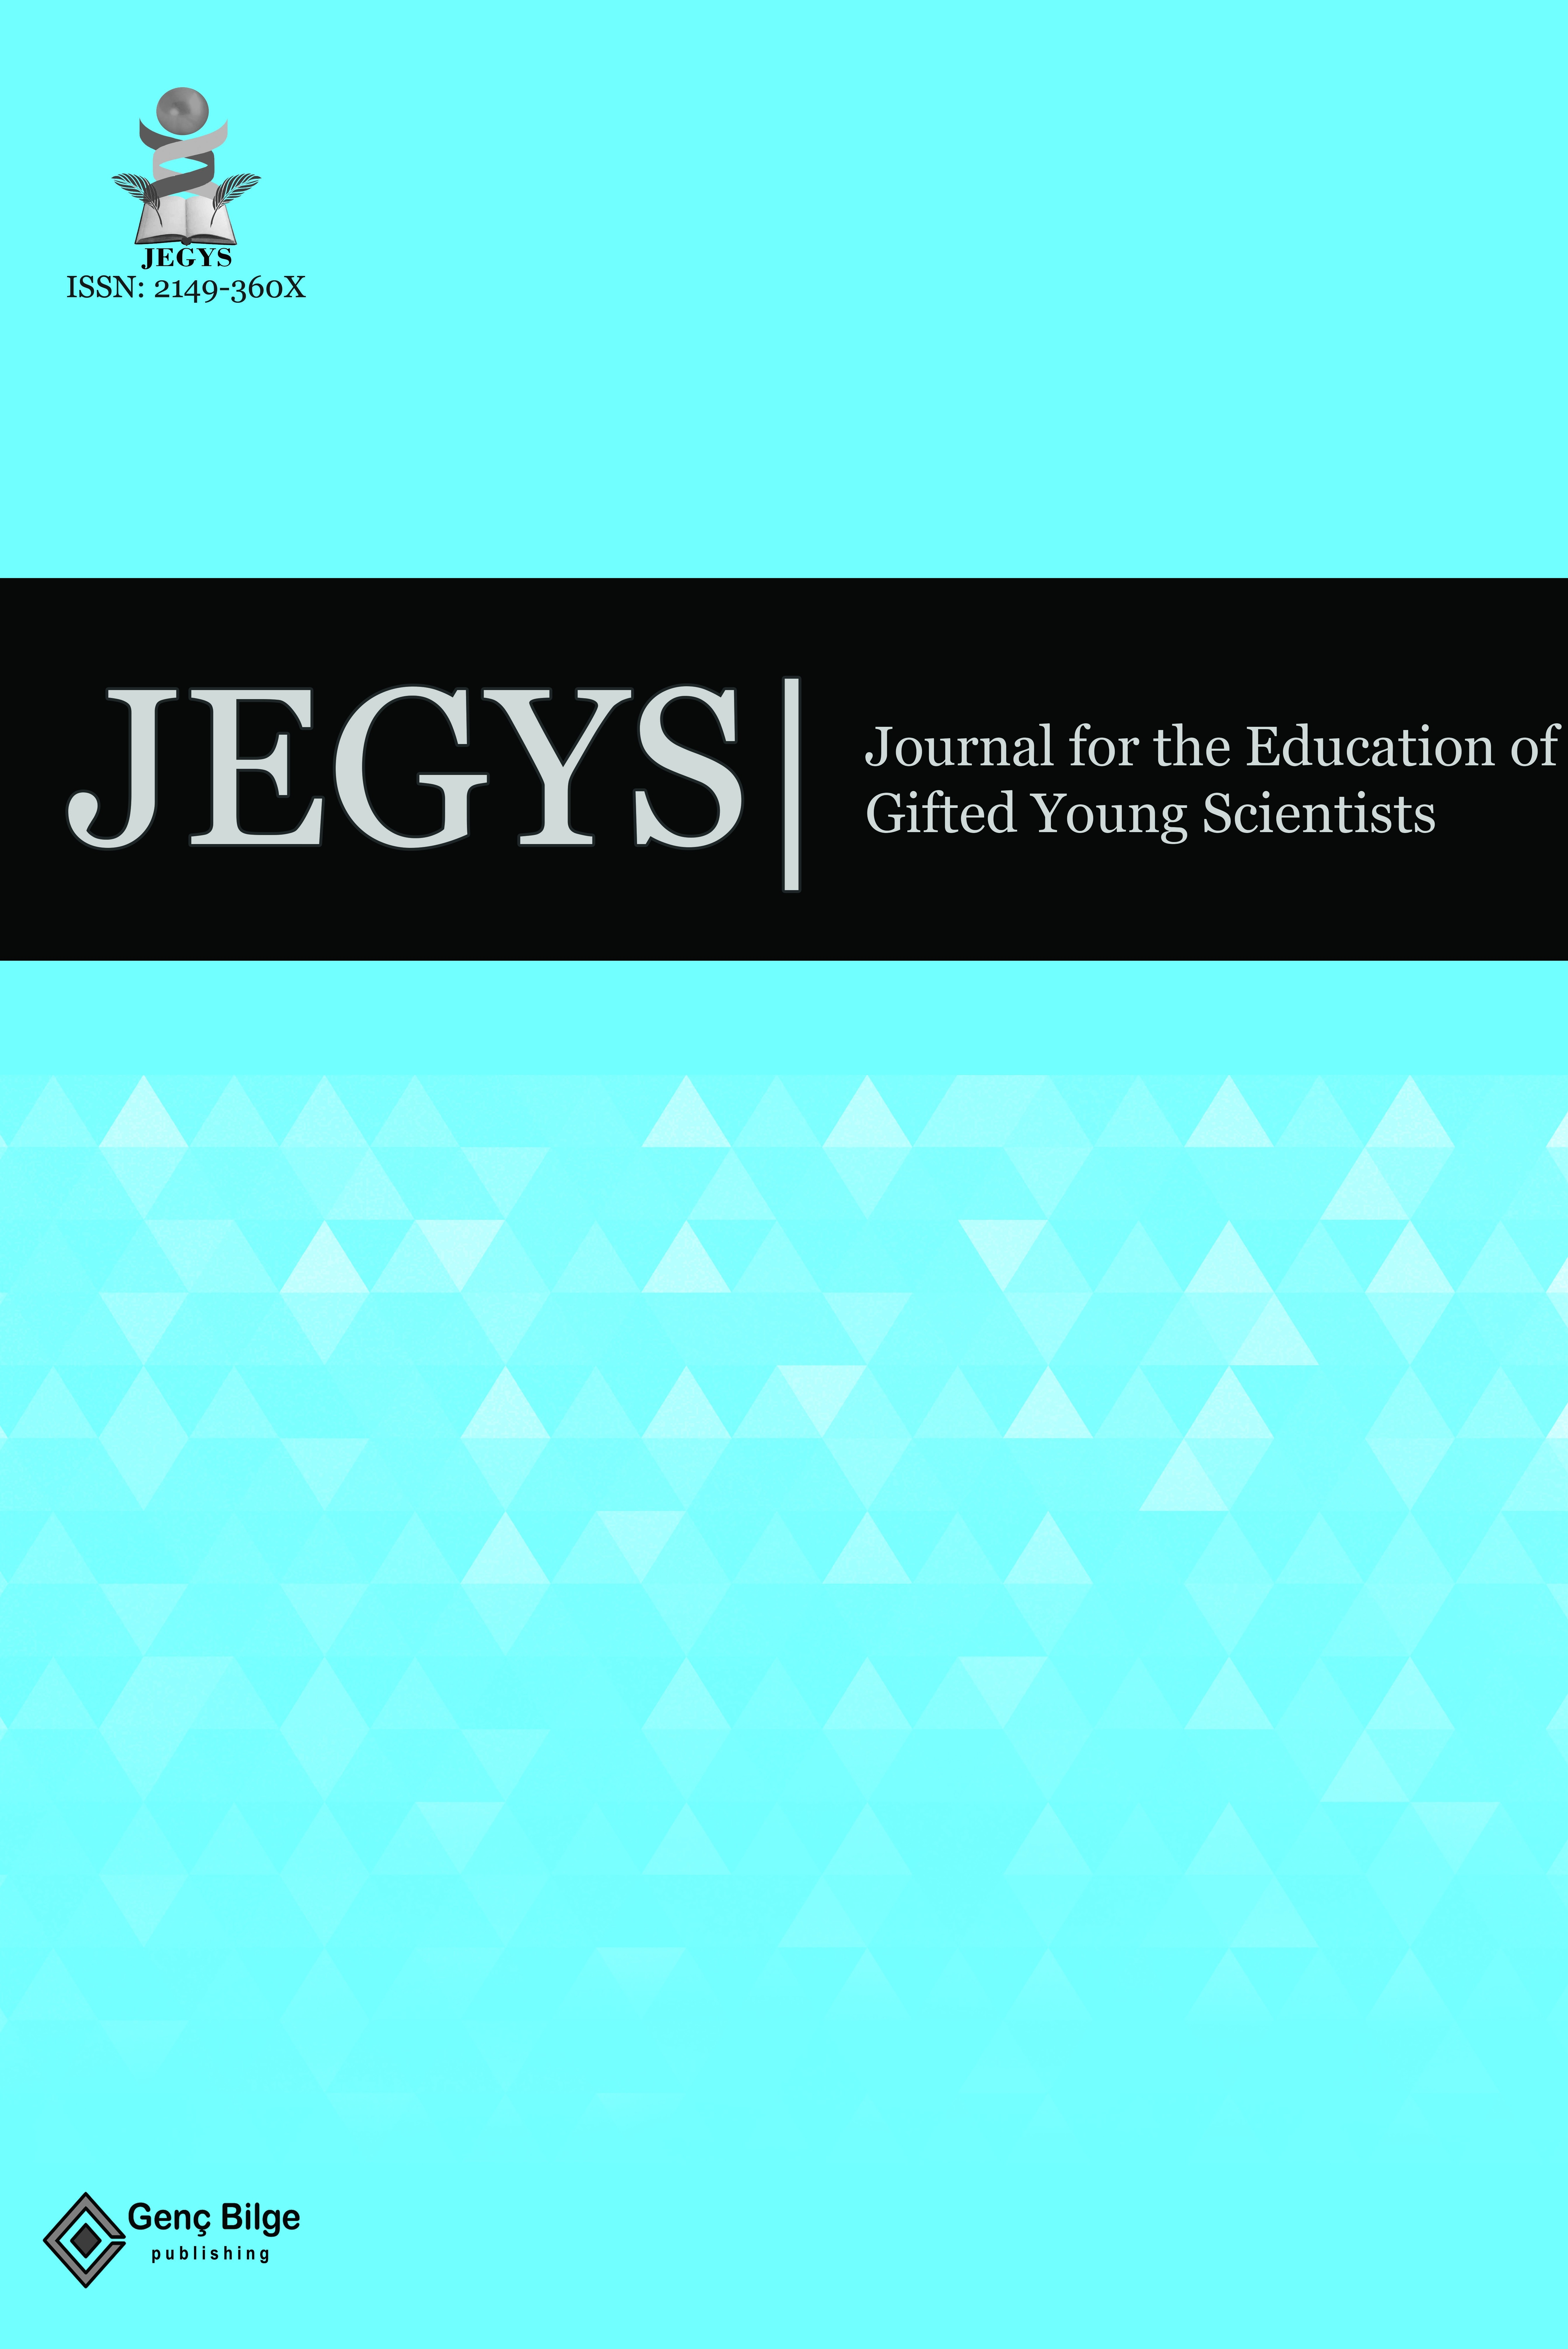 Journal for the Education of Gifted Young Scientists